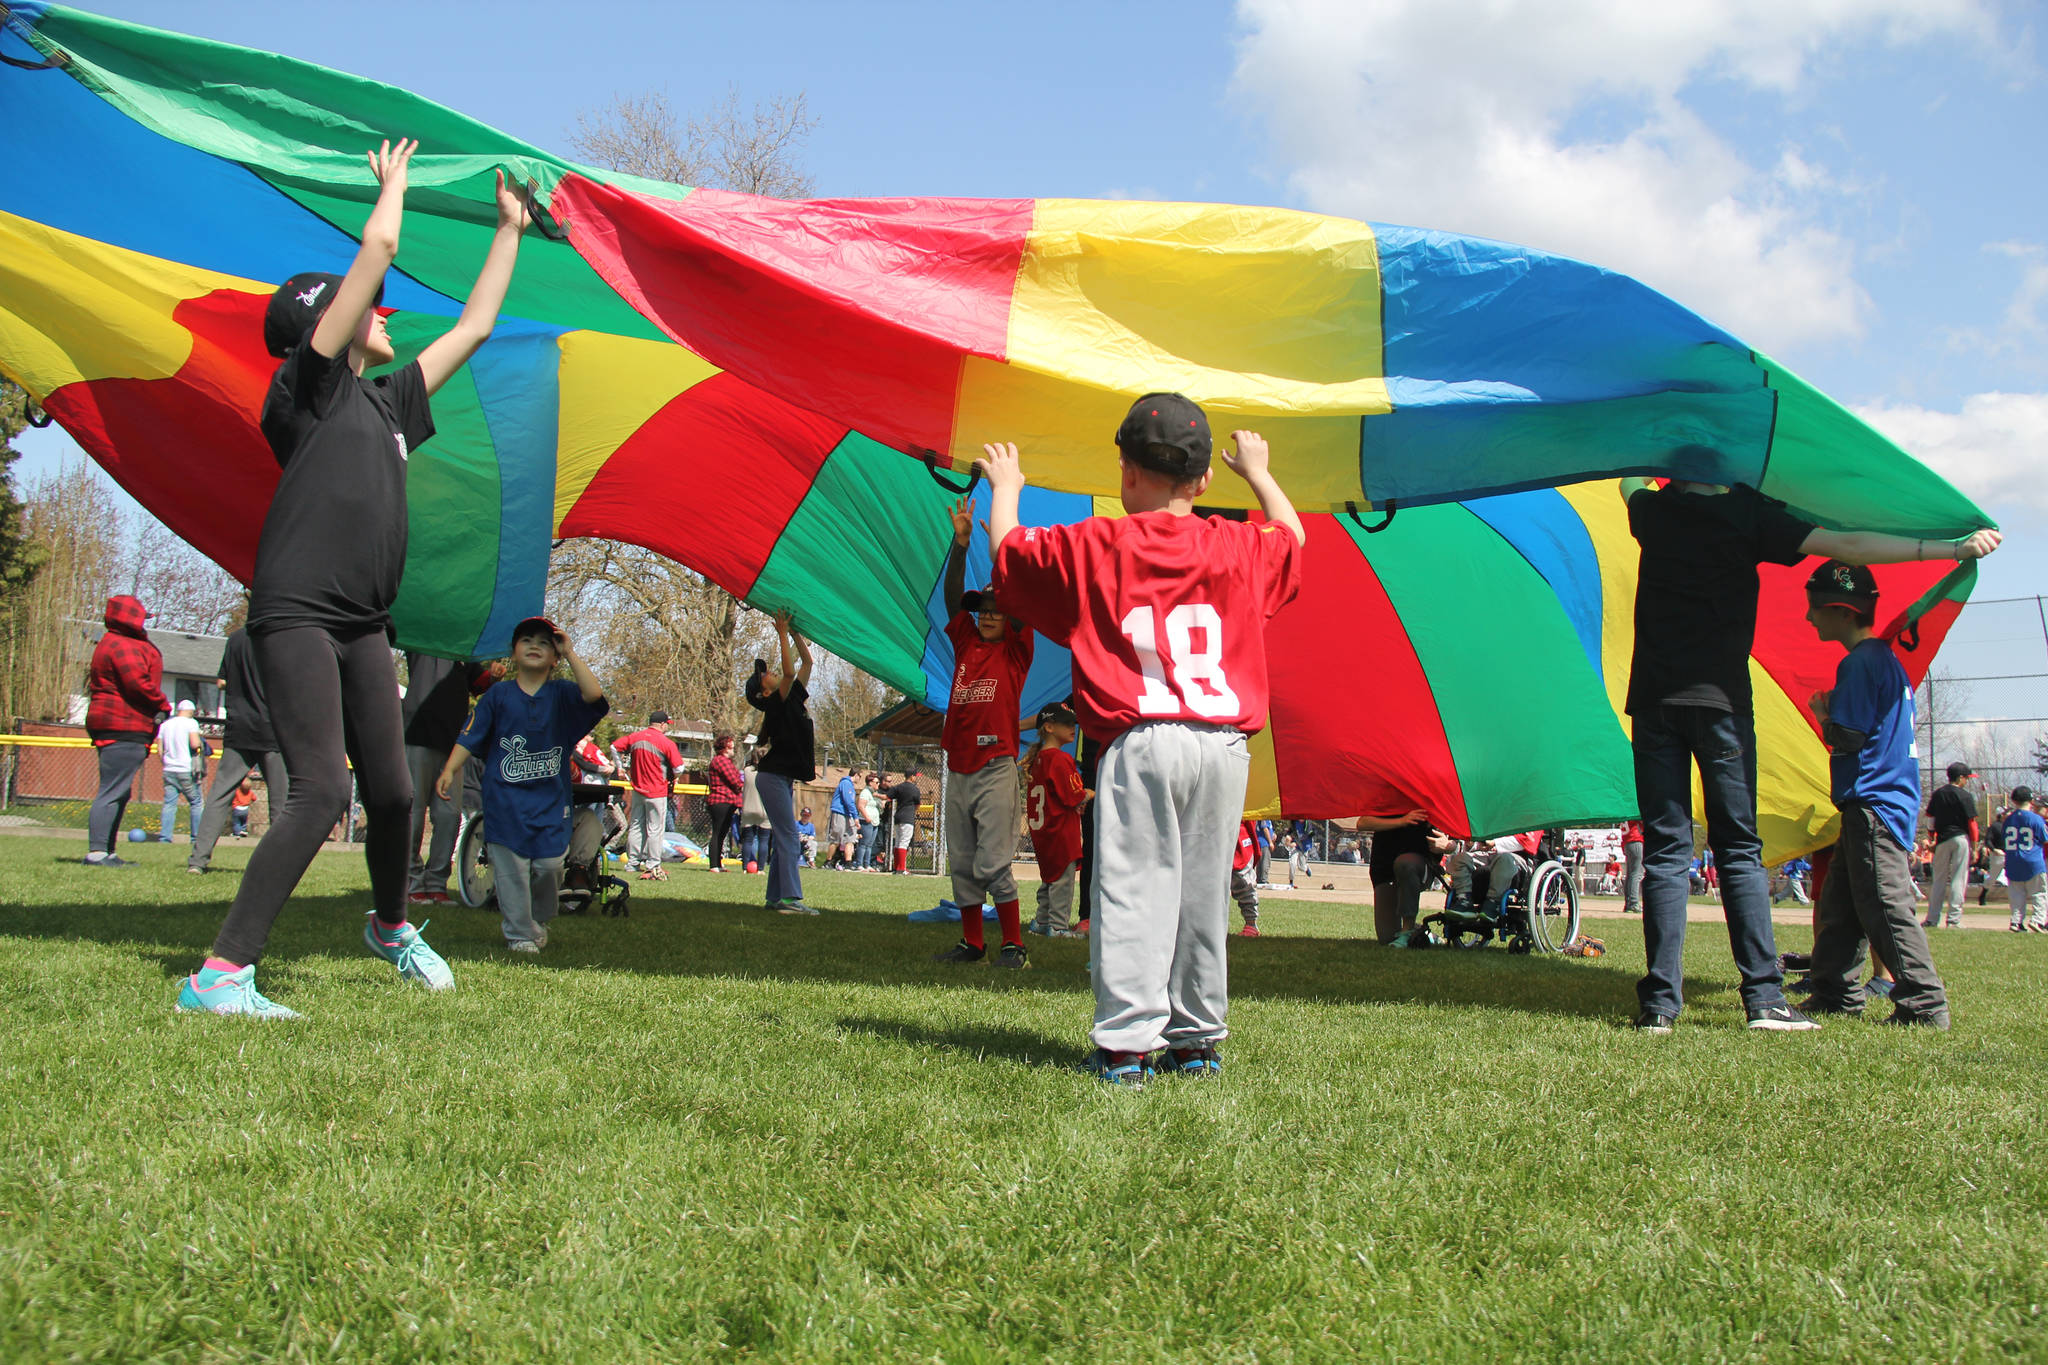 Some of the Challenger players were enjoying parachute games in the outfield while they waited for their turn up to bat. (Grace Kennedy photo)